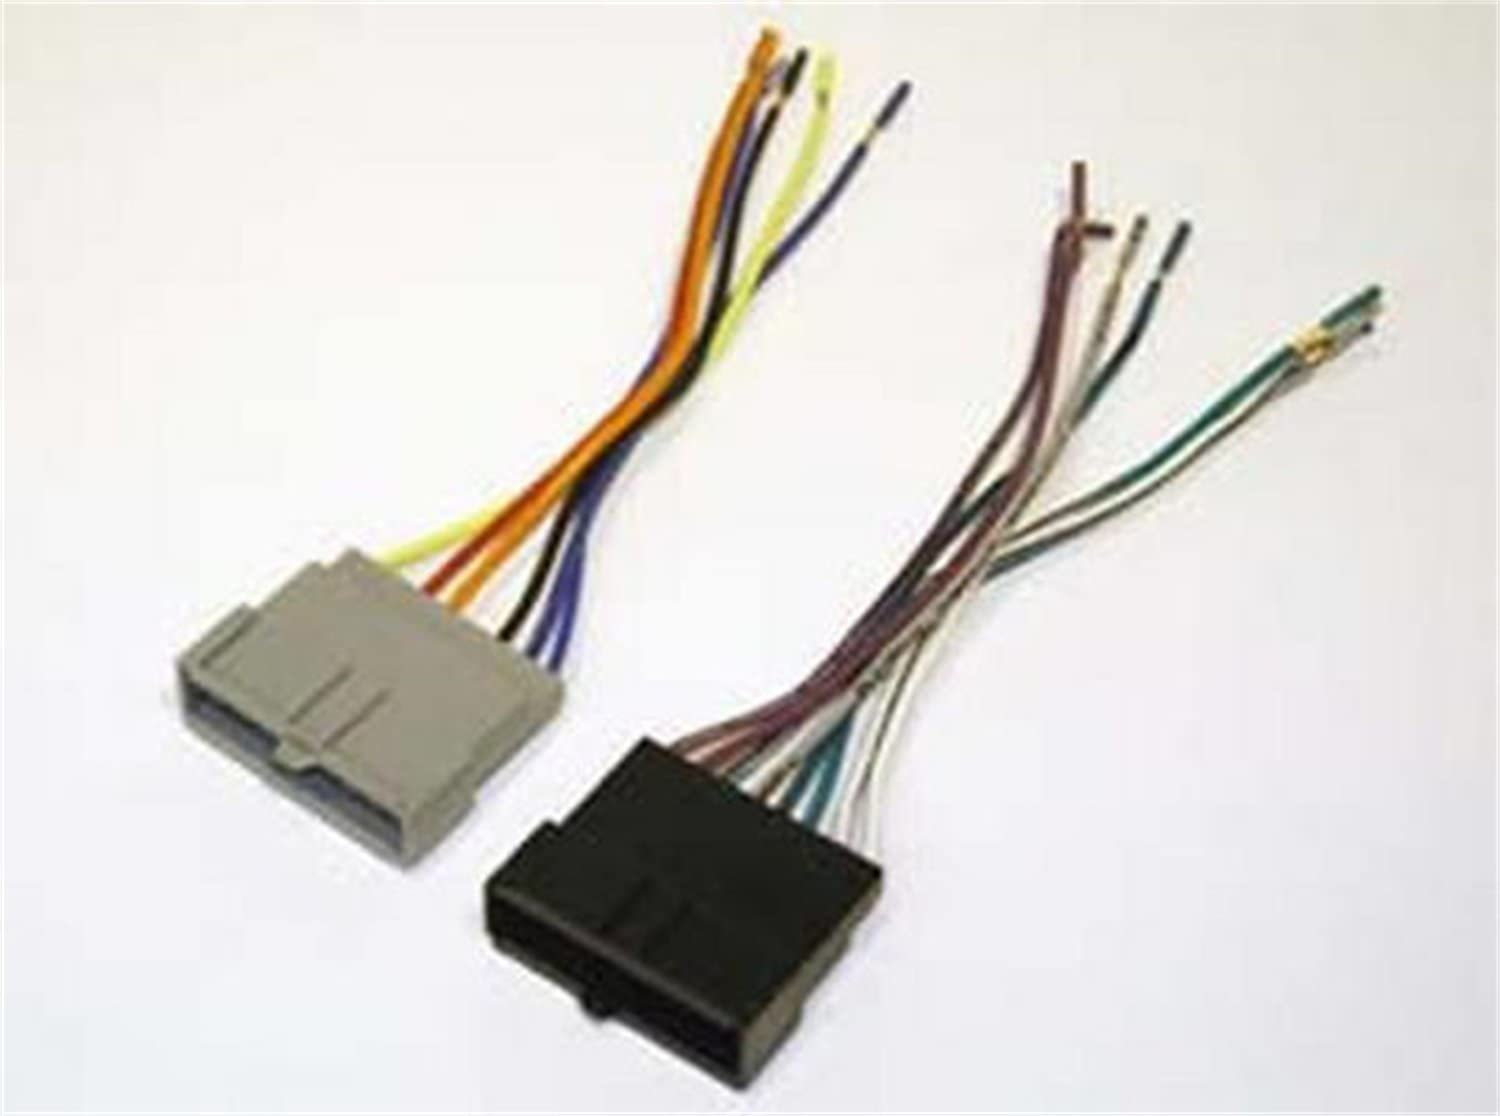 SCOSCHE FD02B Wiring Harness Kit to Connect an Aftermarket Stereo Receiver for Select 1986-2004 Ford Vehicles: Car Electronics